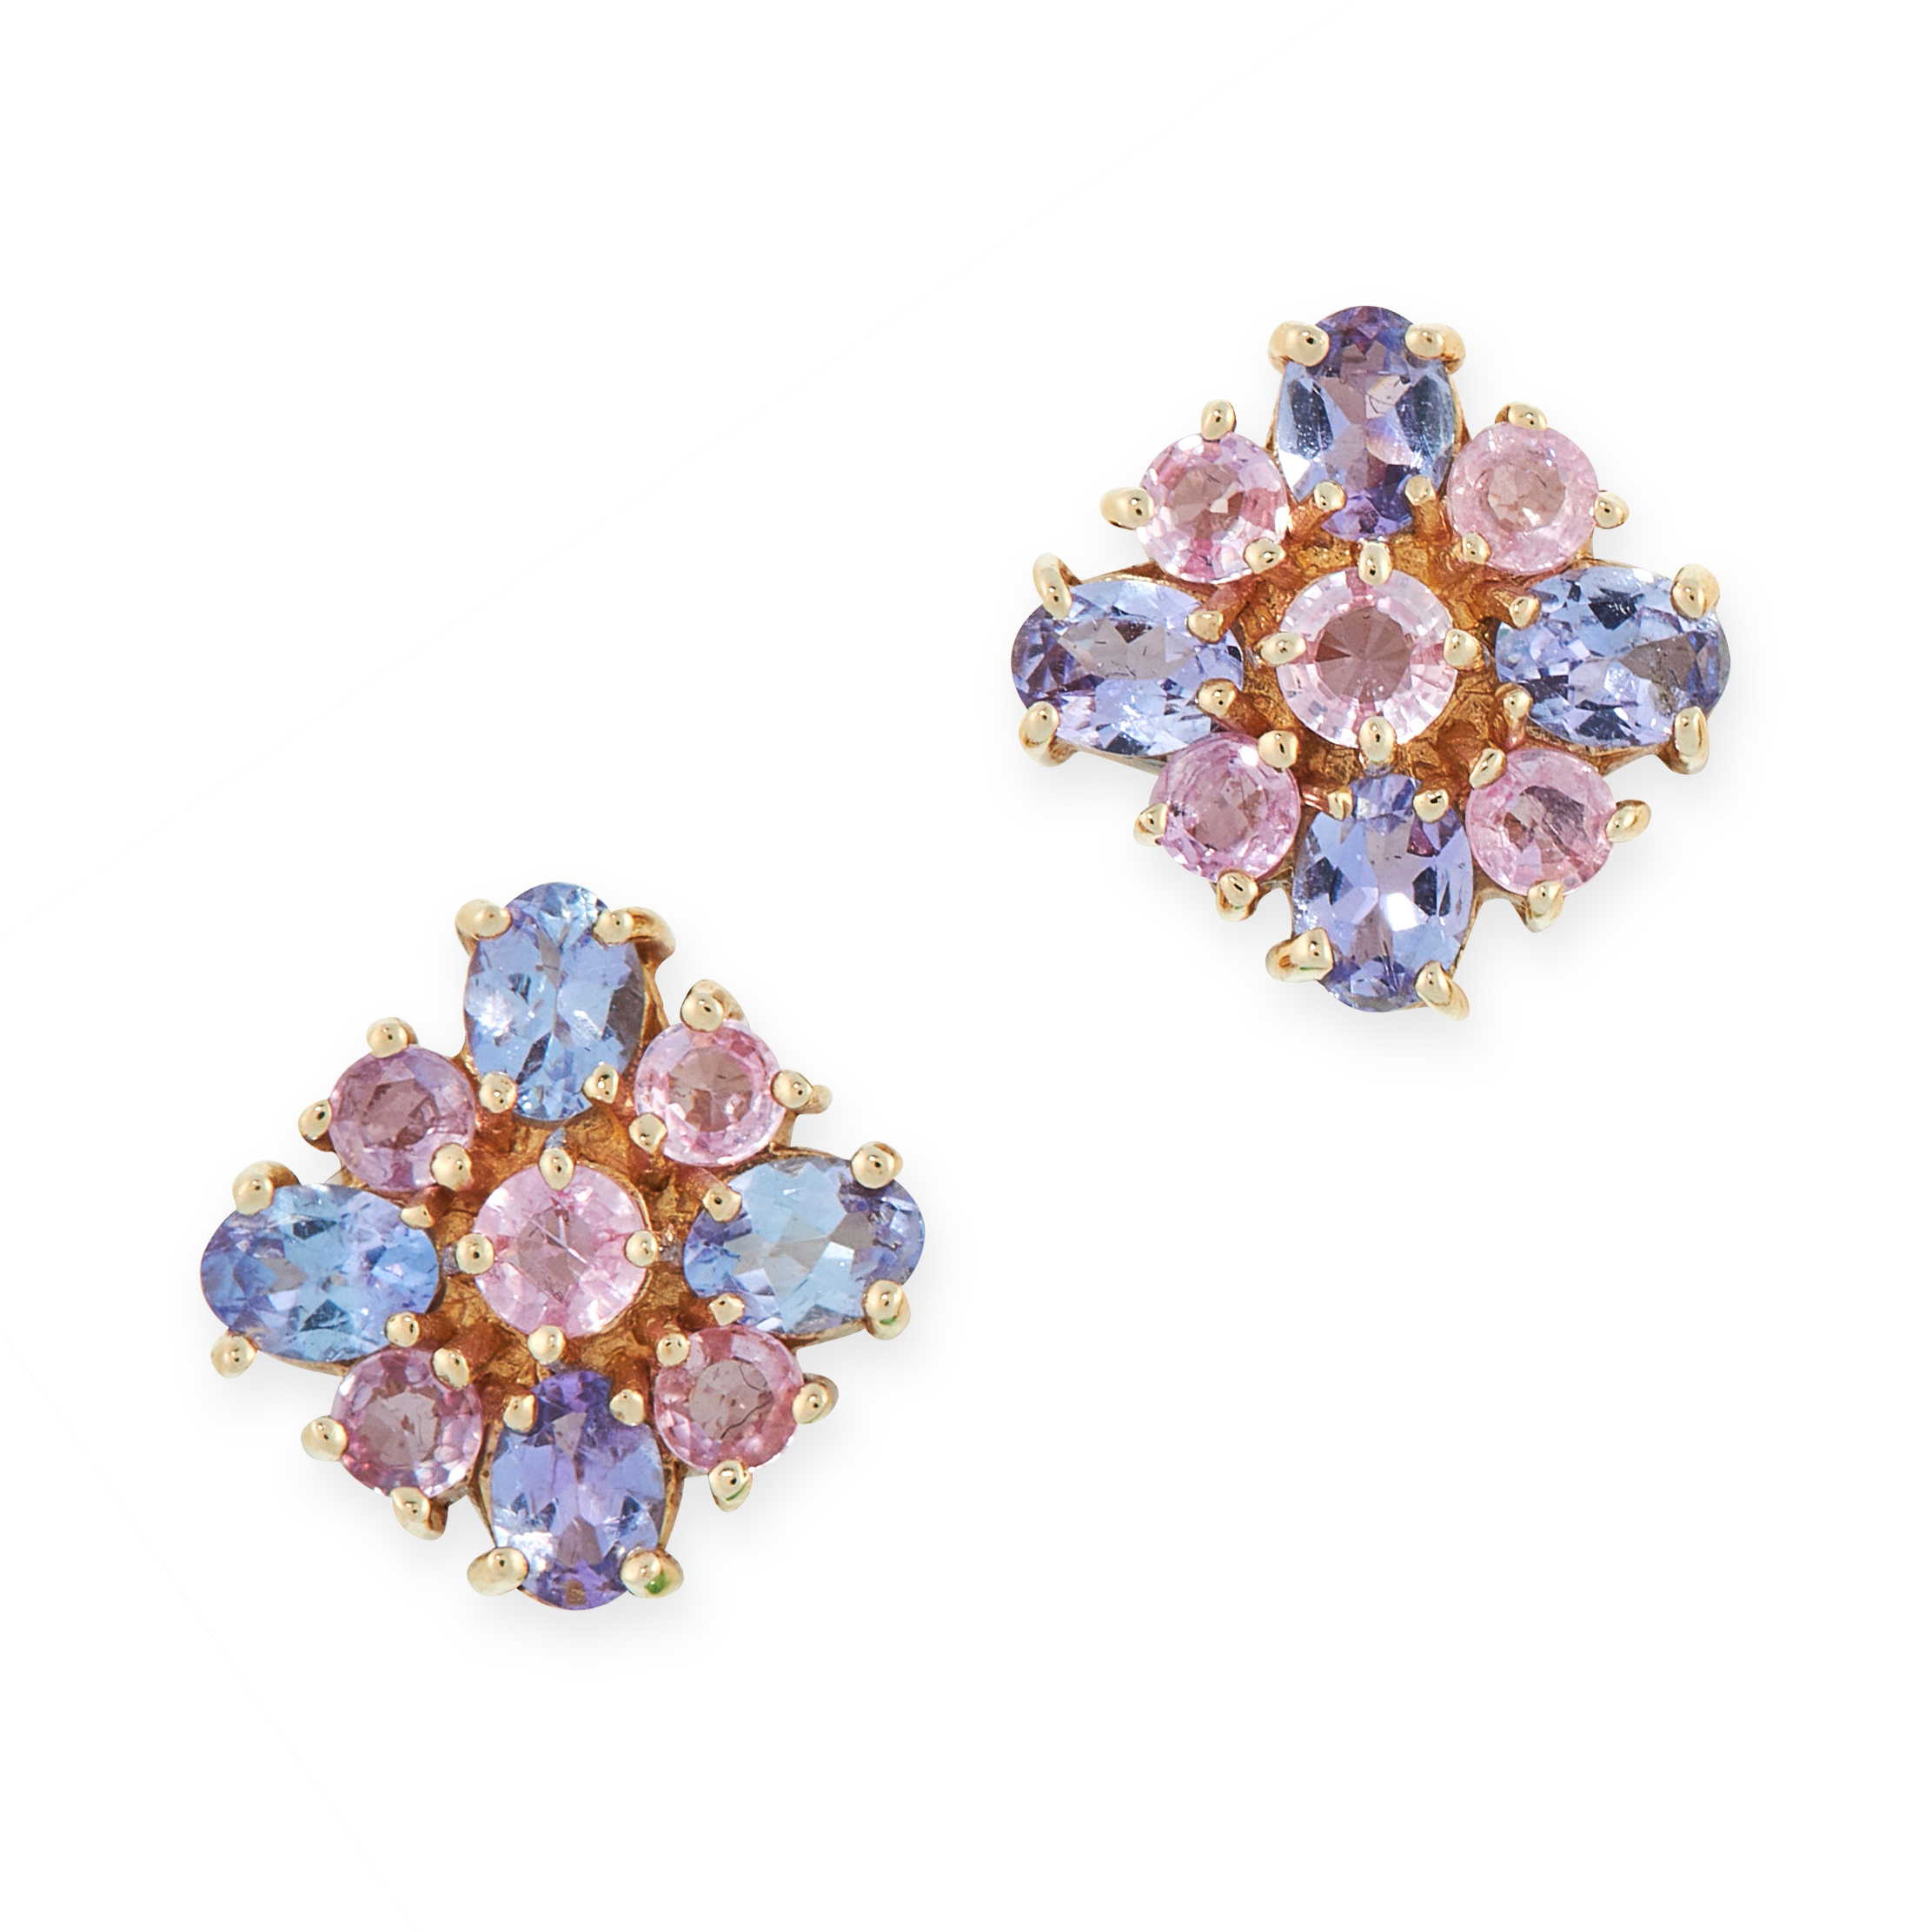 A PAIR OF GEMSET STUD EARRINGS in 14ct yellow gold, set with round cut pink gemstones in cross